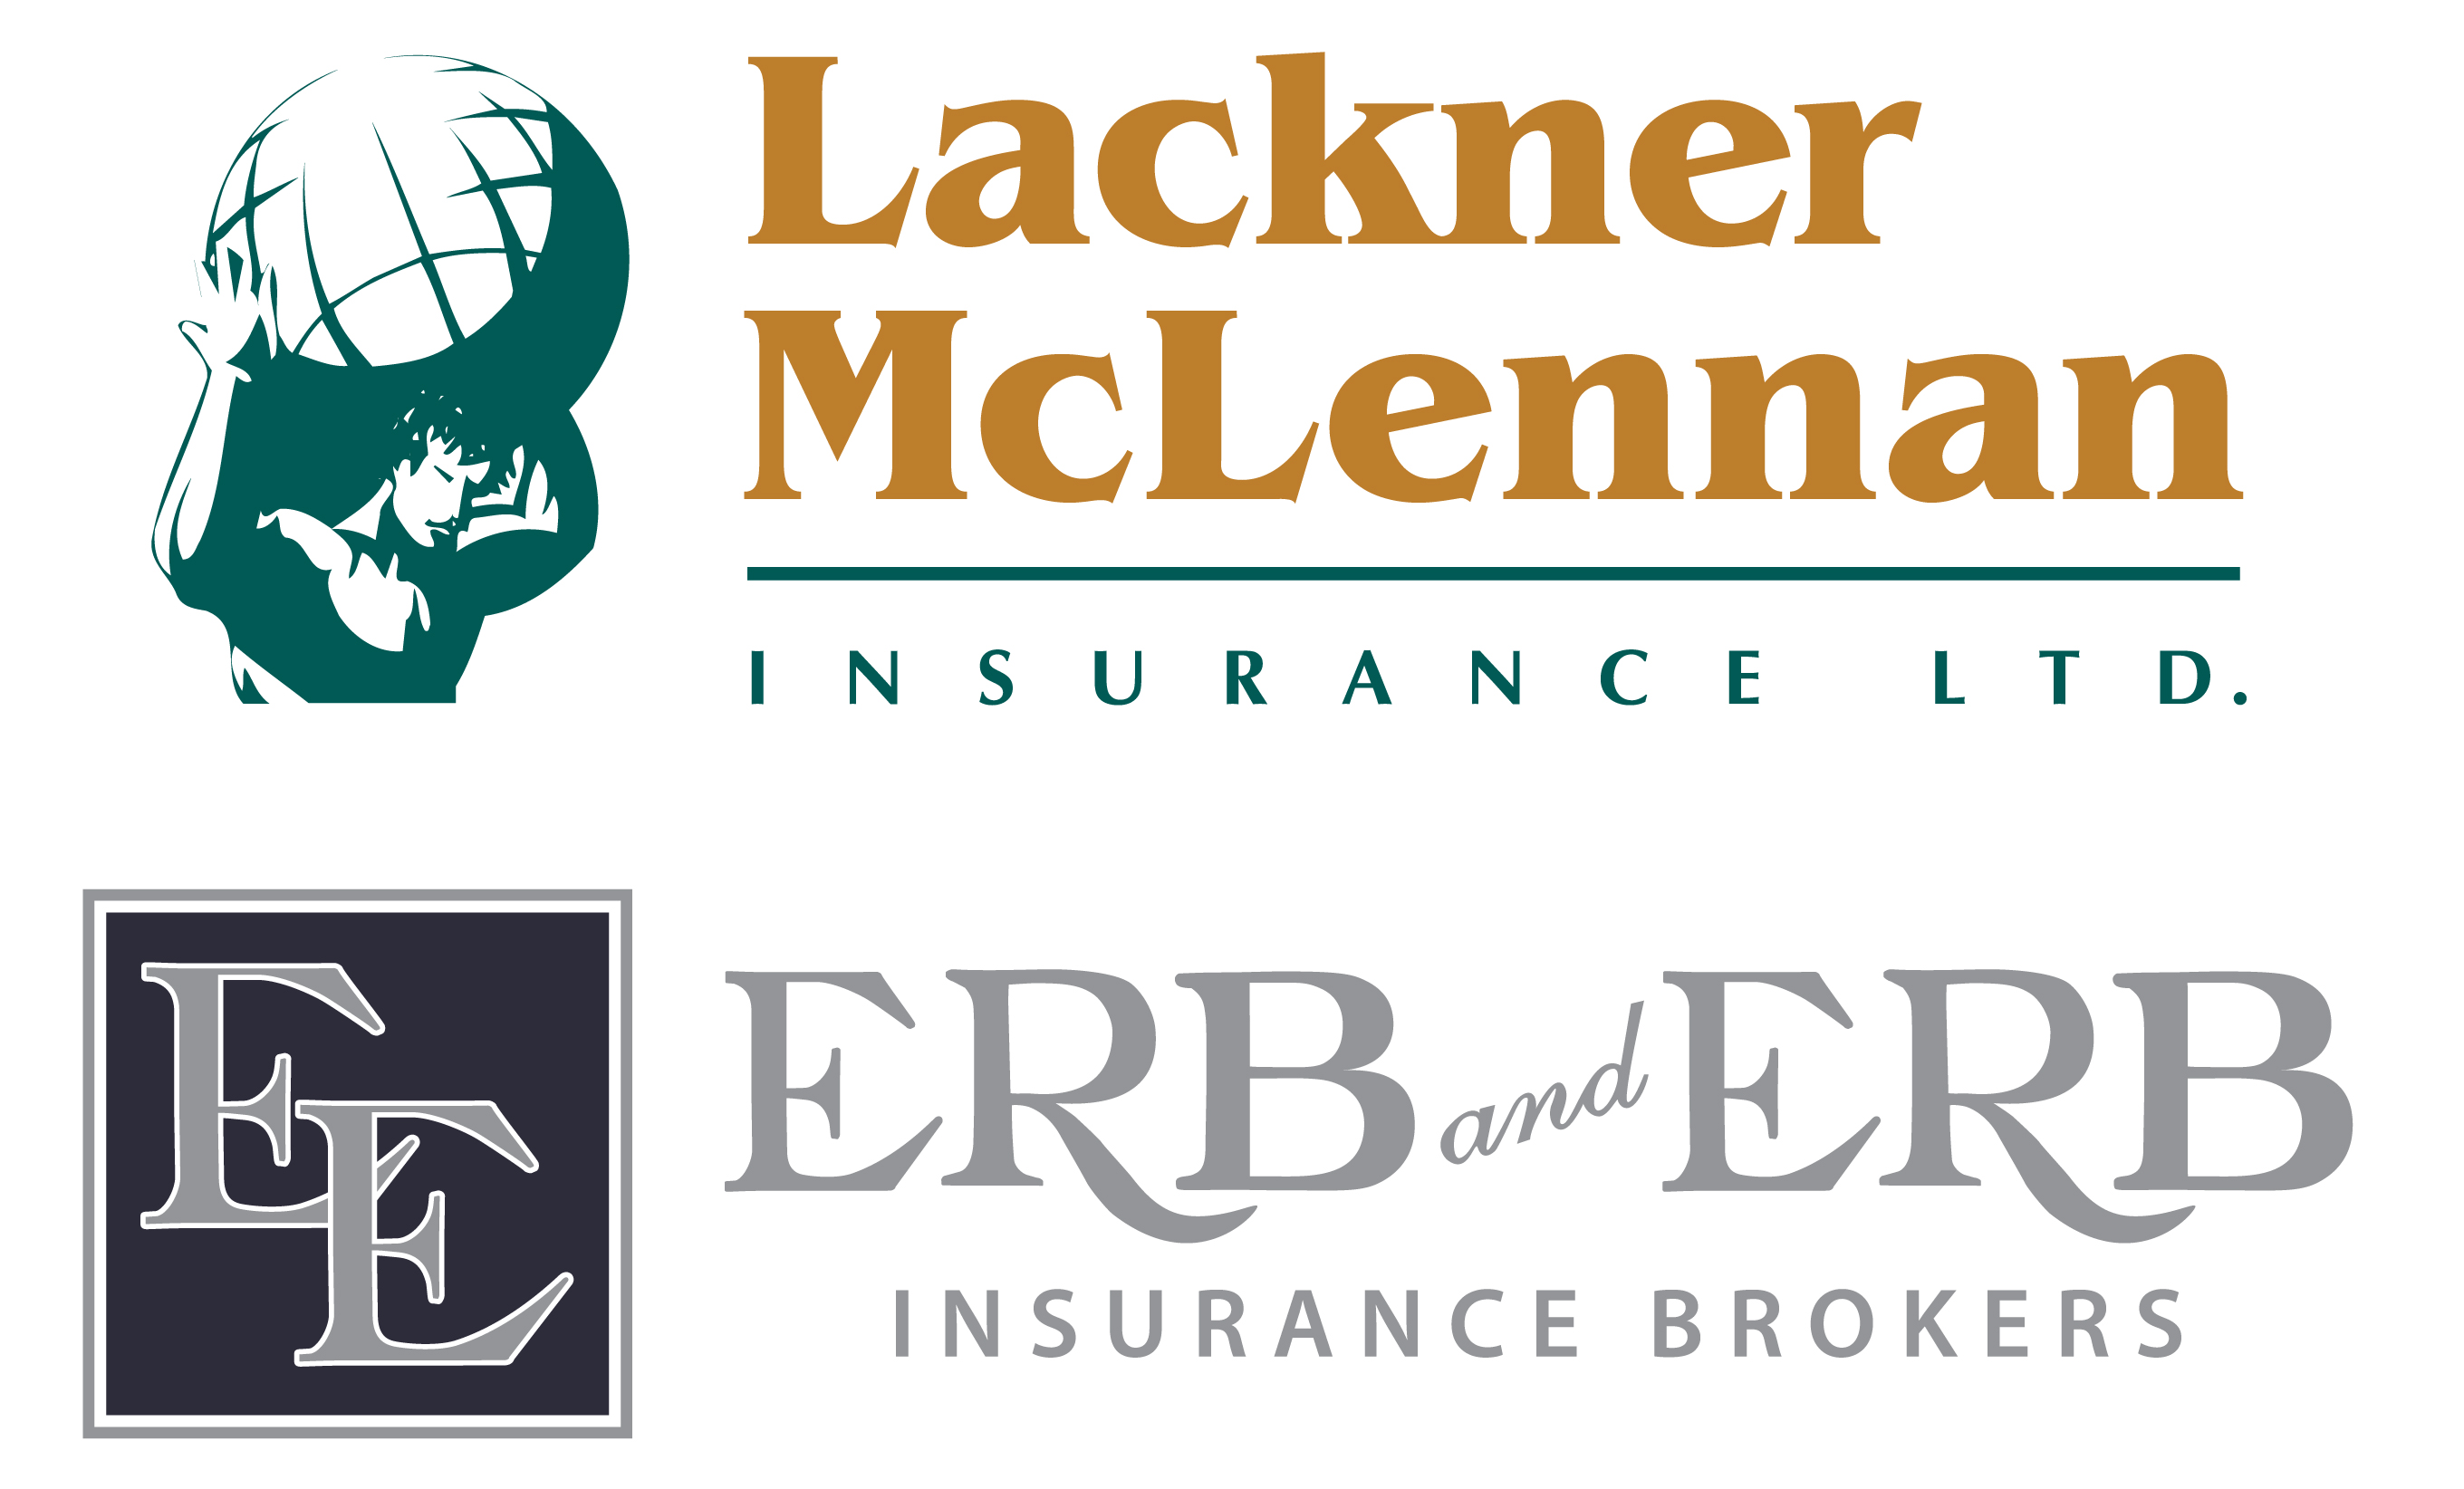 Hole Sponsor - Lackner McLennan & Erb and Erb Insurance Brokers - Logo